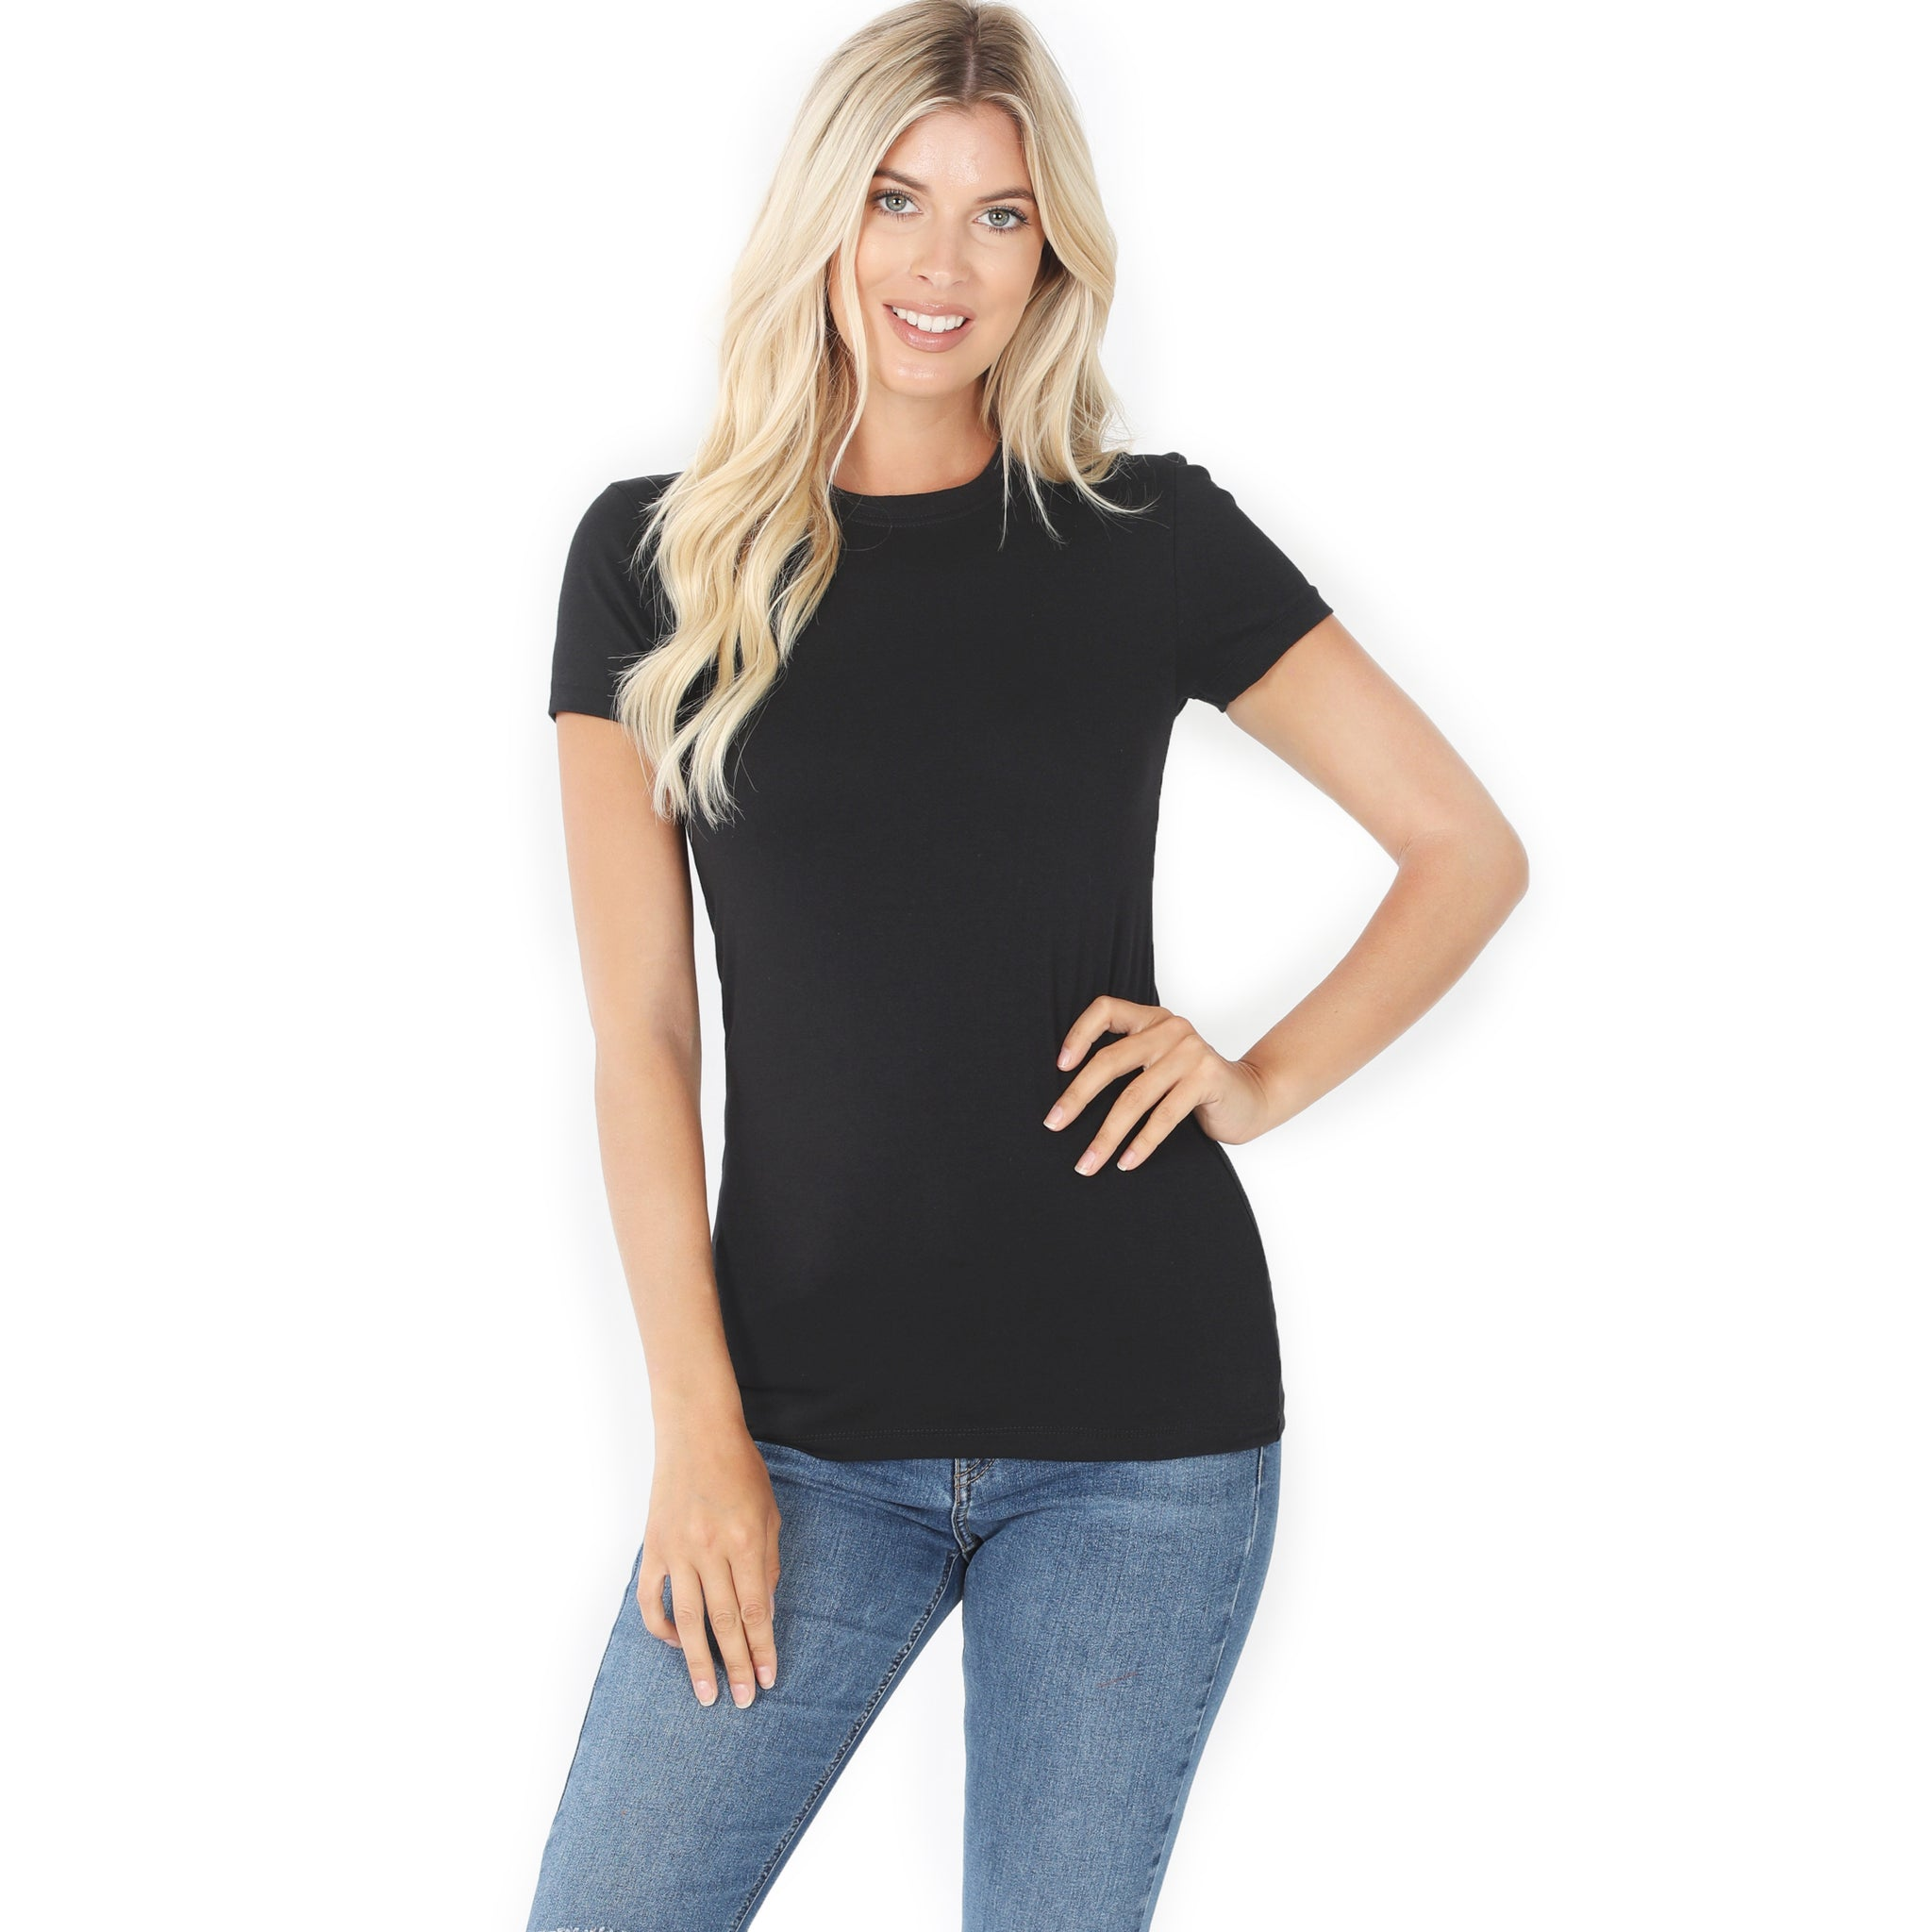 KEEP IT BASIC CREW NECK SHORT SLEEVE TEE IN BLACK-BASICS-MODE-Couture-Boutique-Womens-Clothing